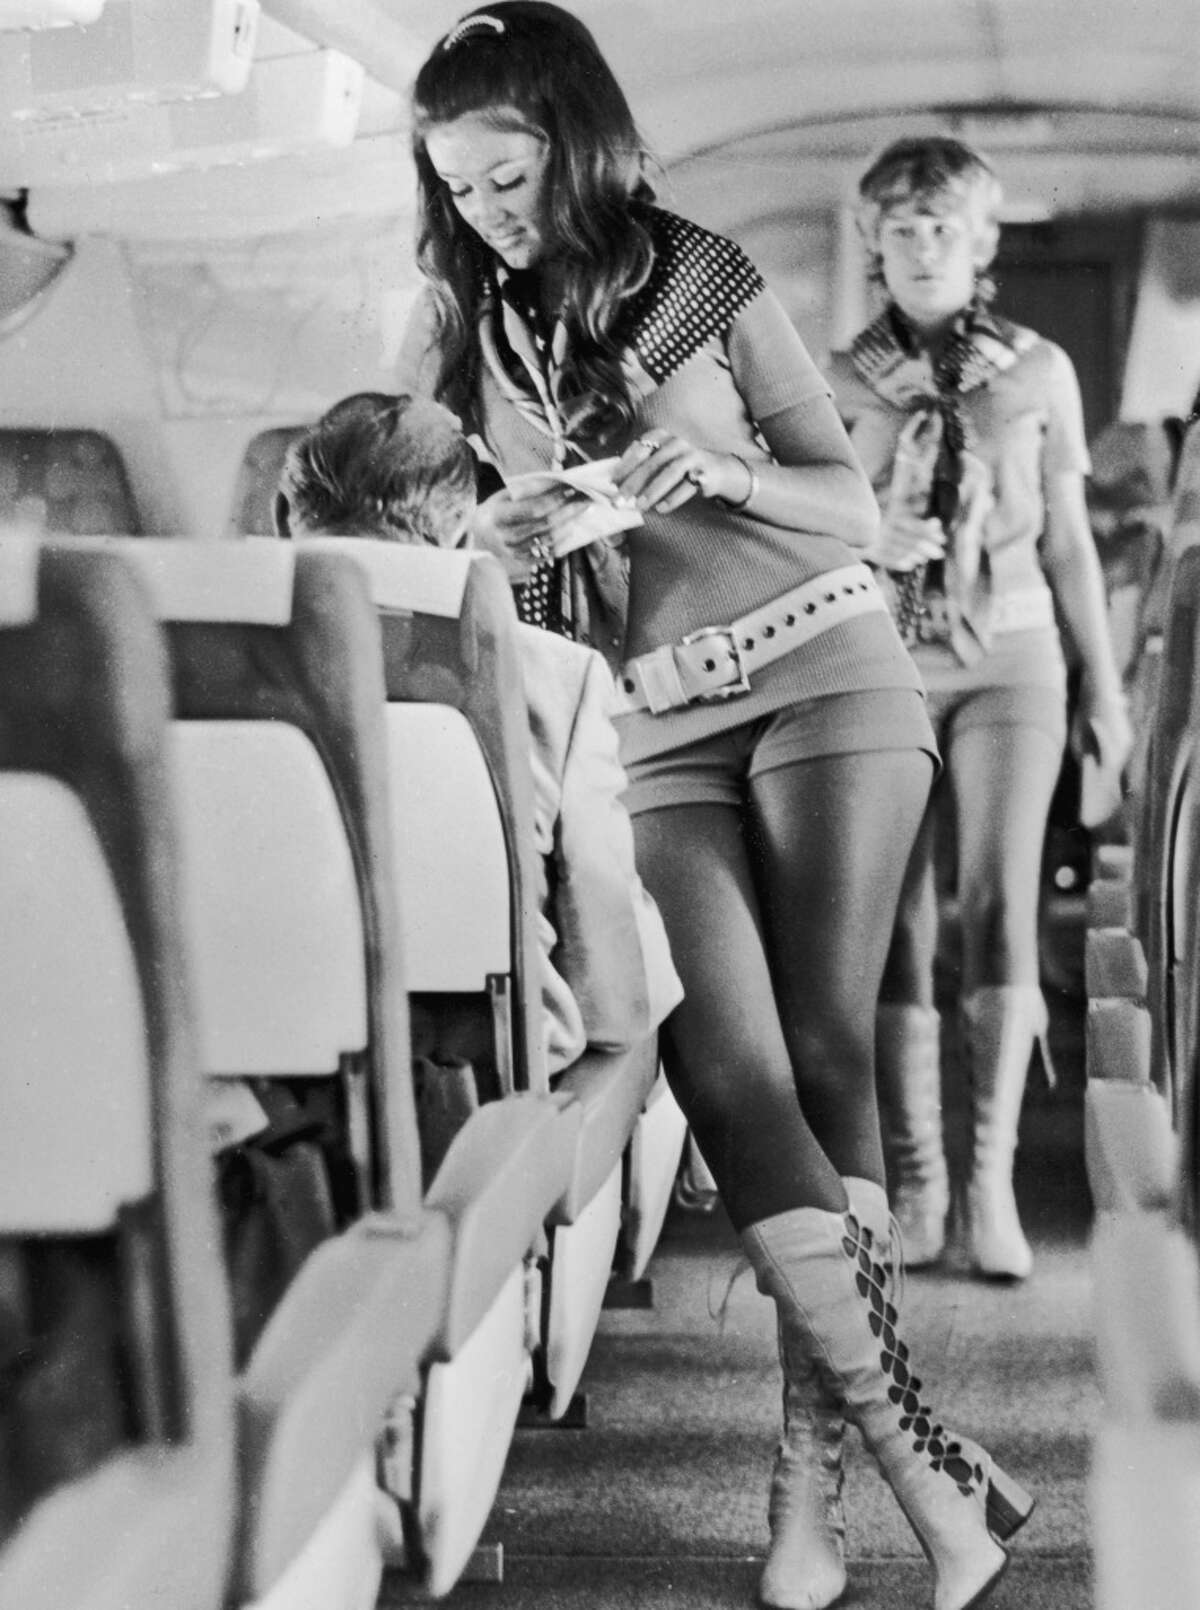 Flight attendantsworking for Southwest Airlines are pictured in 1972.The low-cost carrier that started when its founders drew a triangle connecting Dallas, Houston and San Antonio on a cocktail napkin and has evolved into one of the leading domestic carriers.